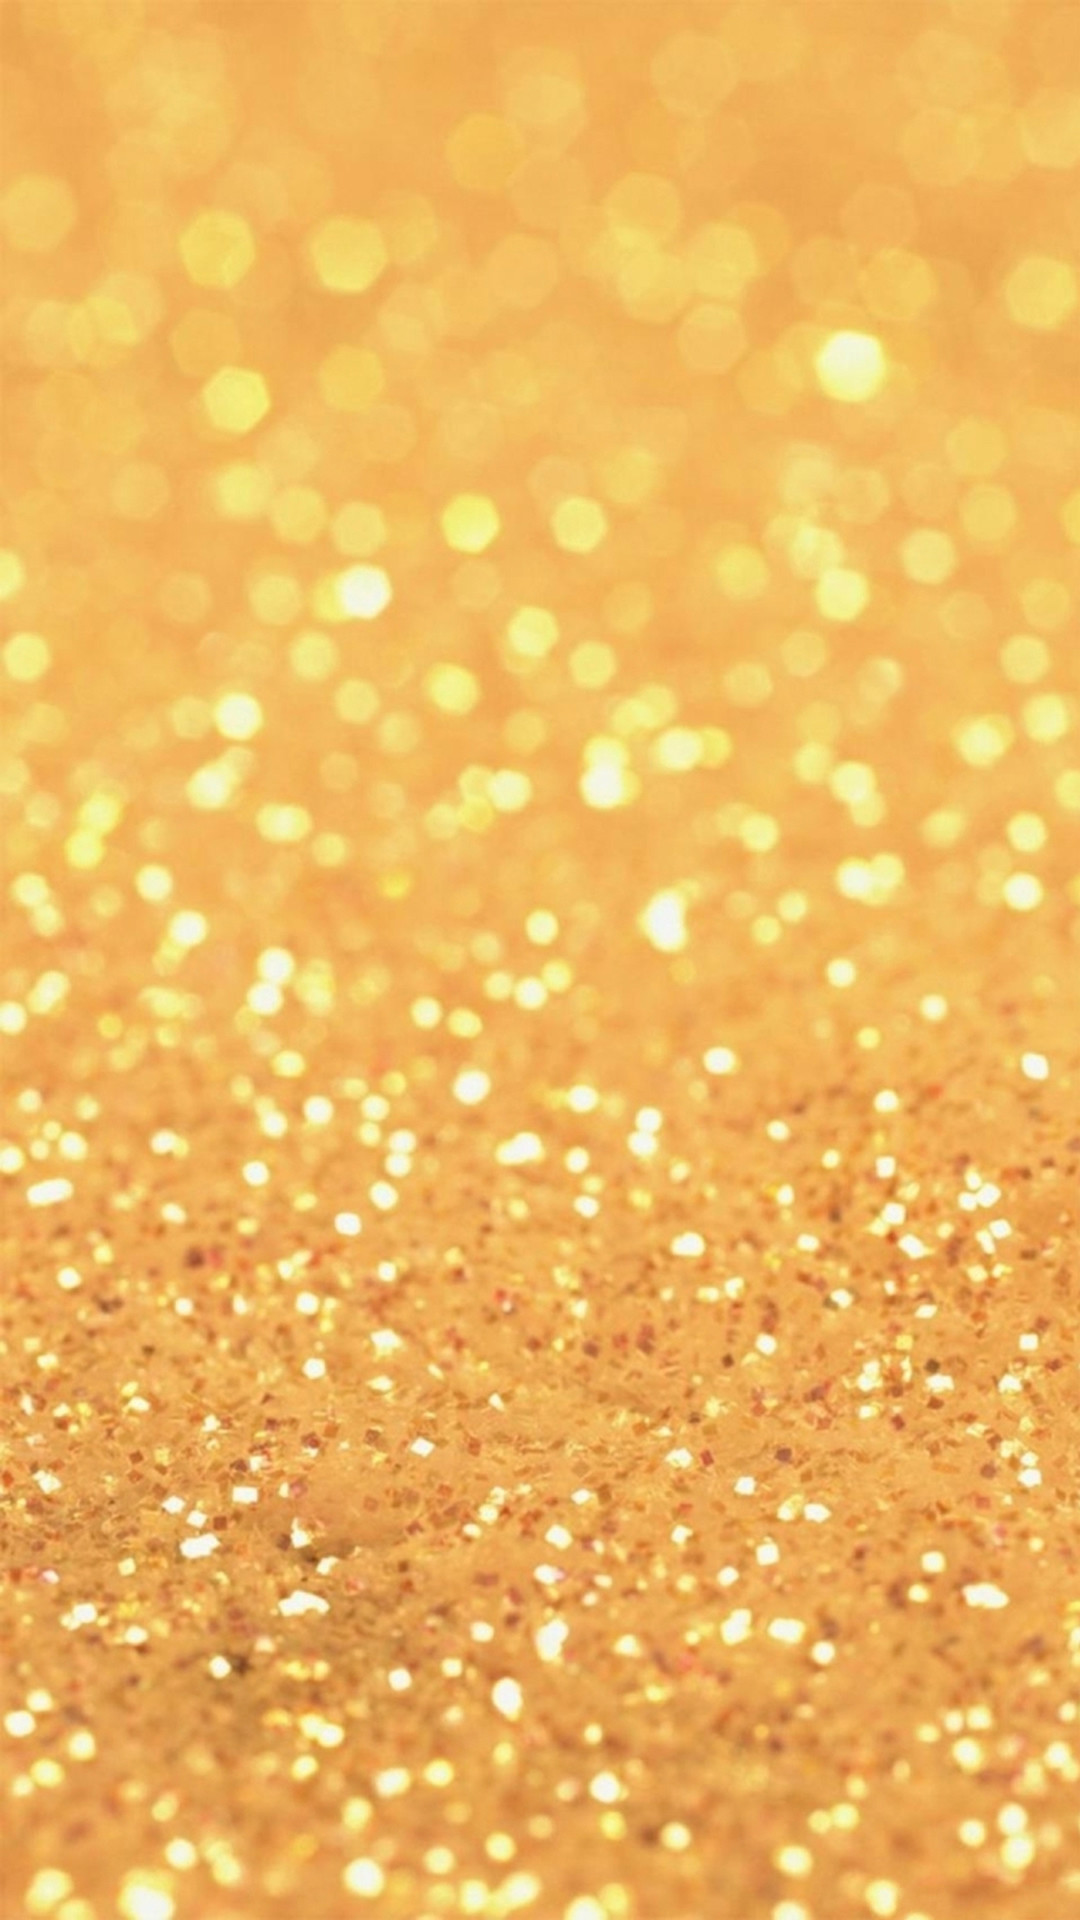 994 2: Abstract Golden Blink Shiny Color Background IPhone 6 Wallpaper